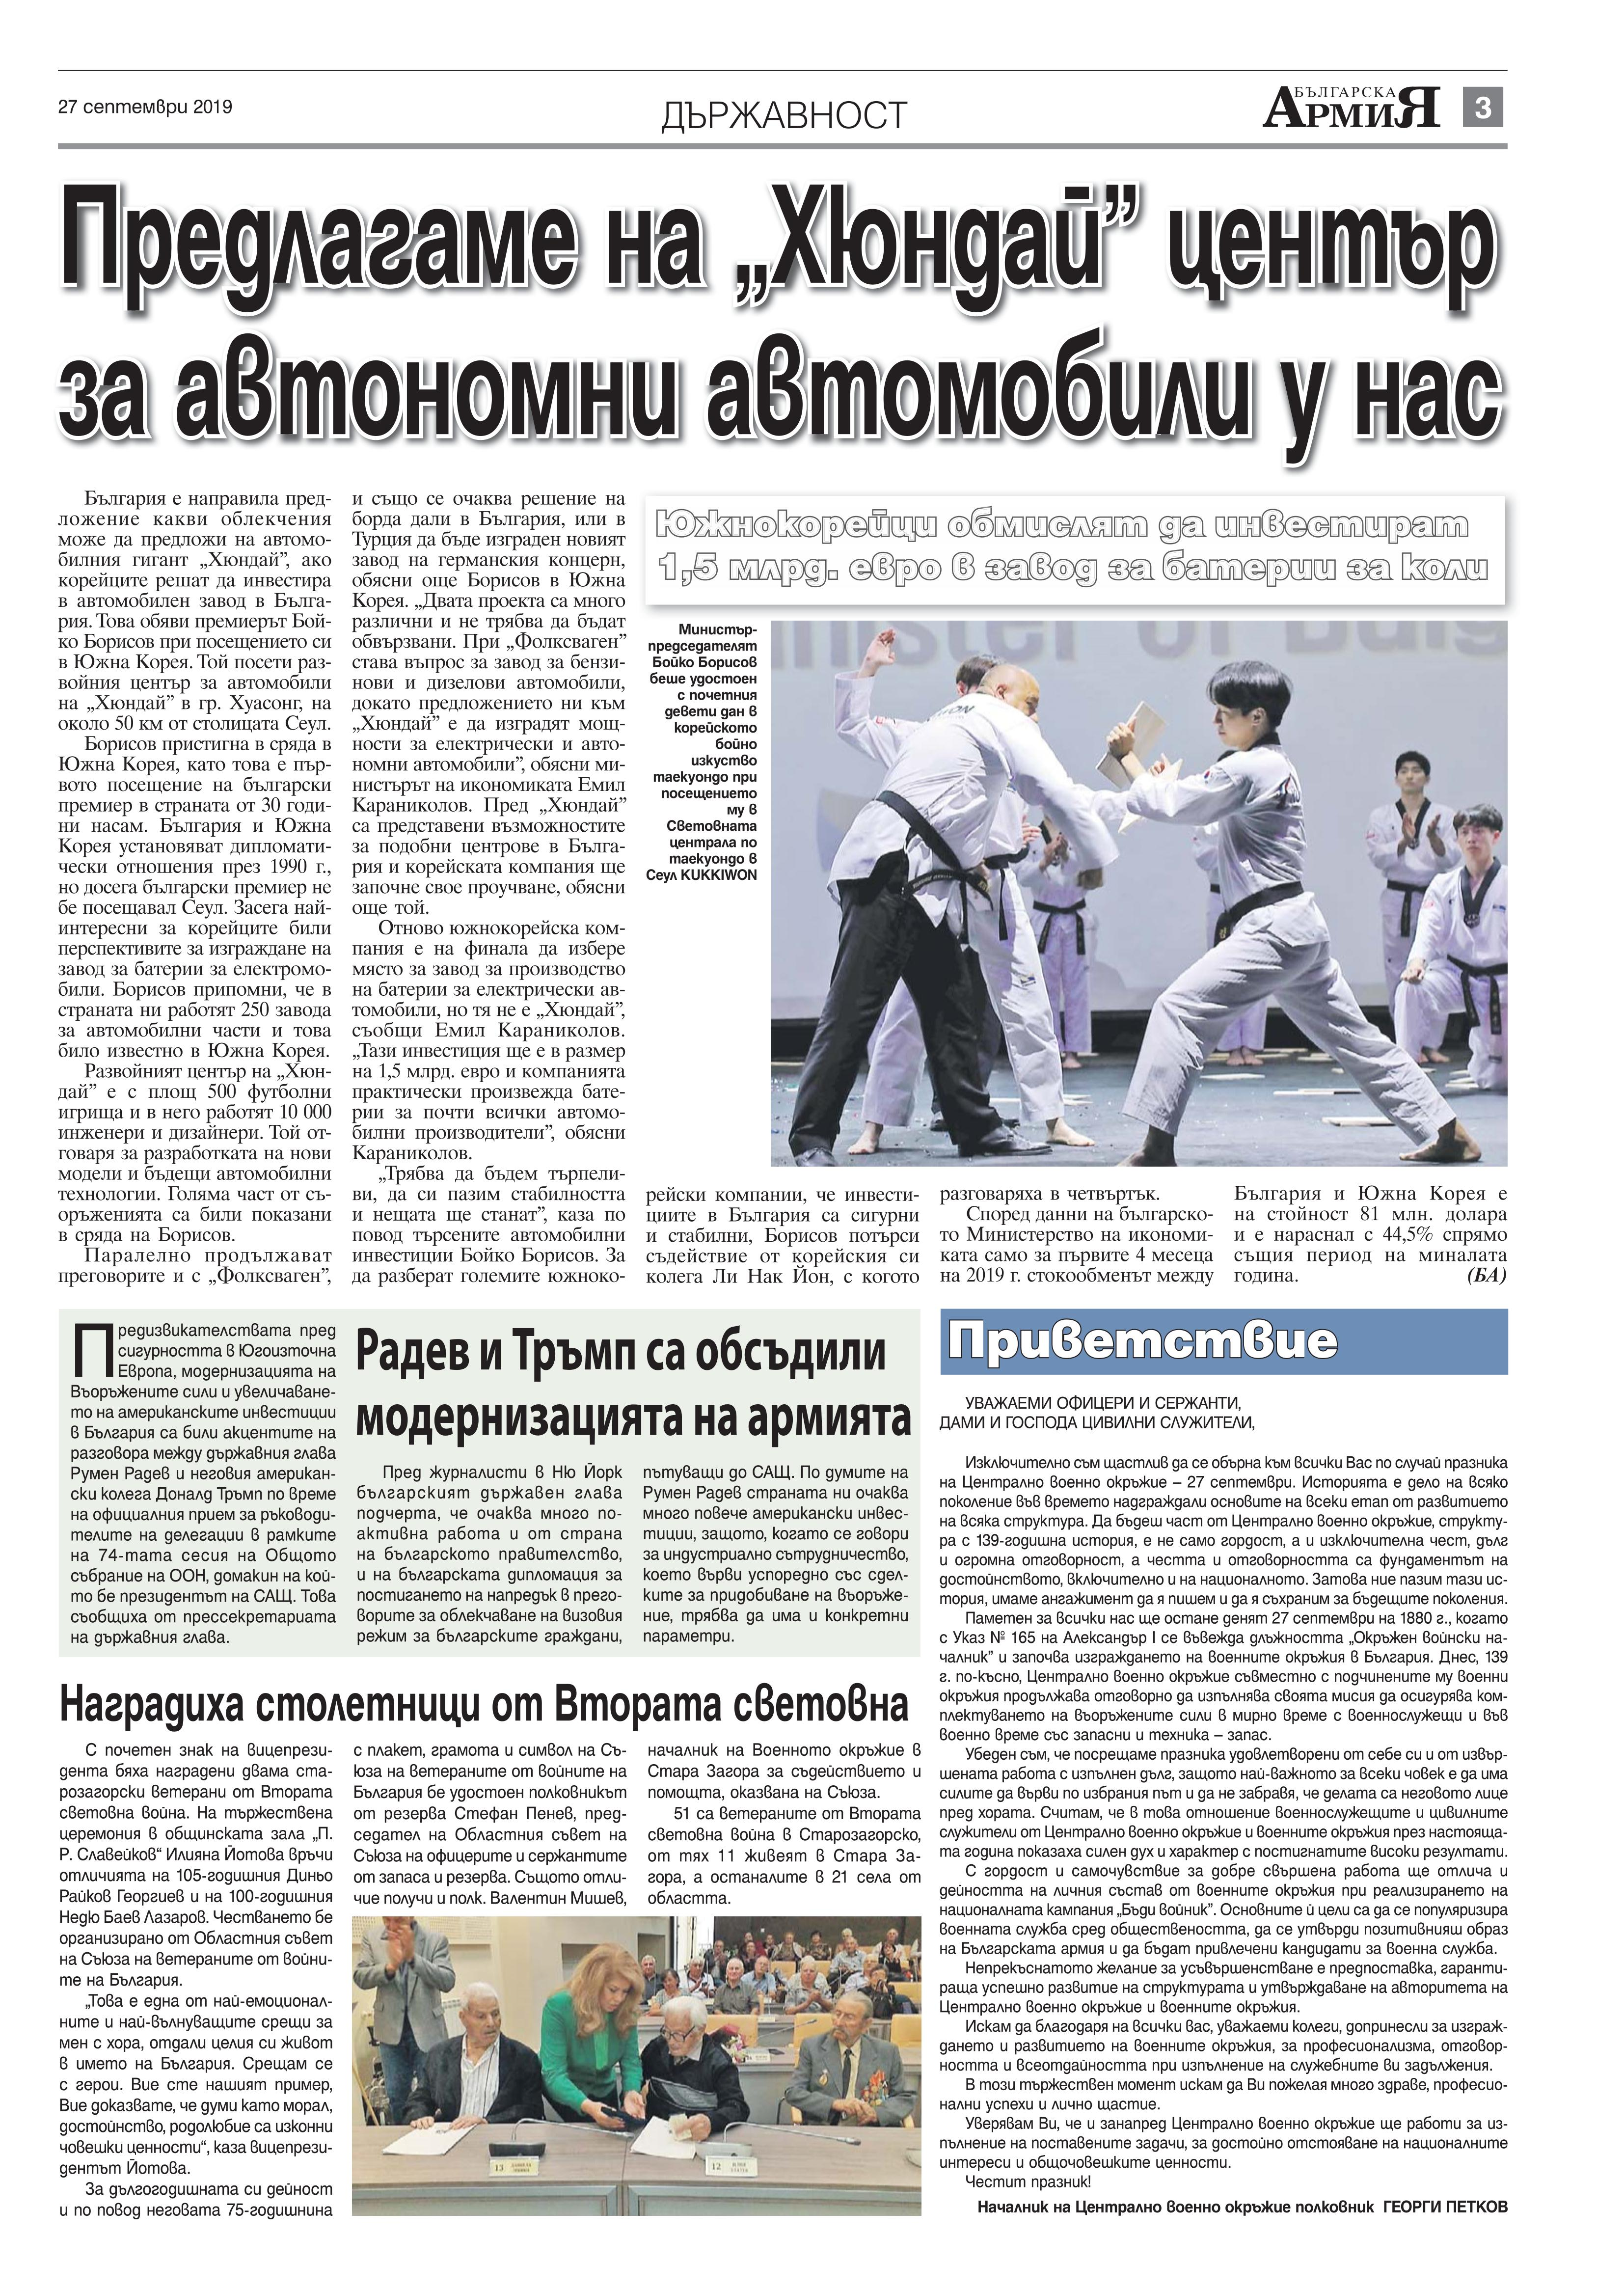 https://www.armymedia.bg/wp-content/uploads/2015/06/03.page1_-107.jpg